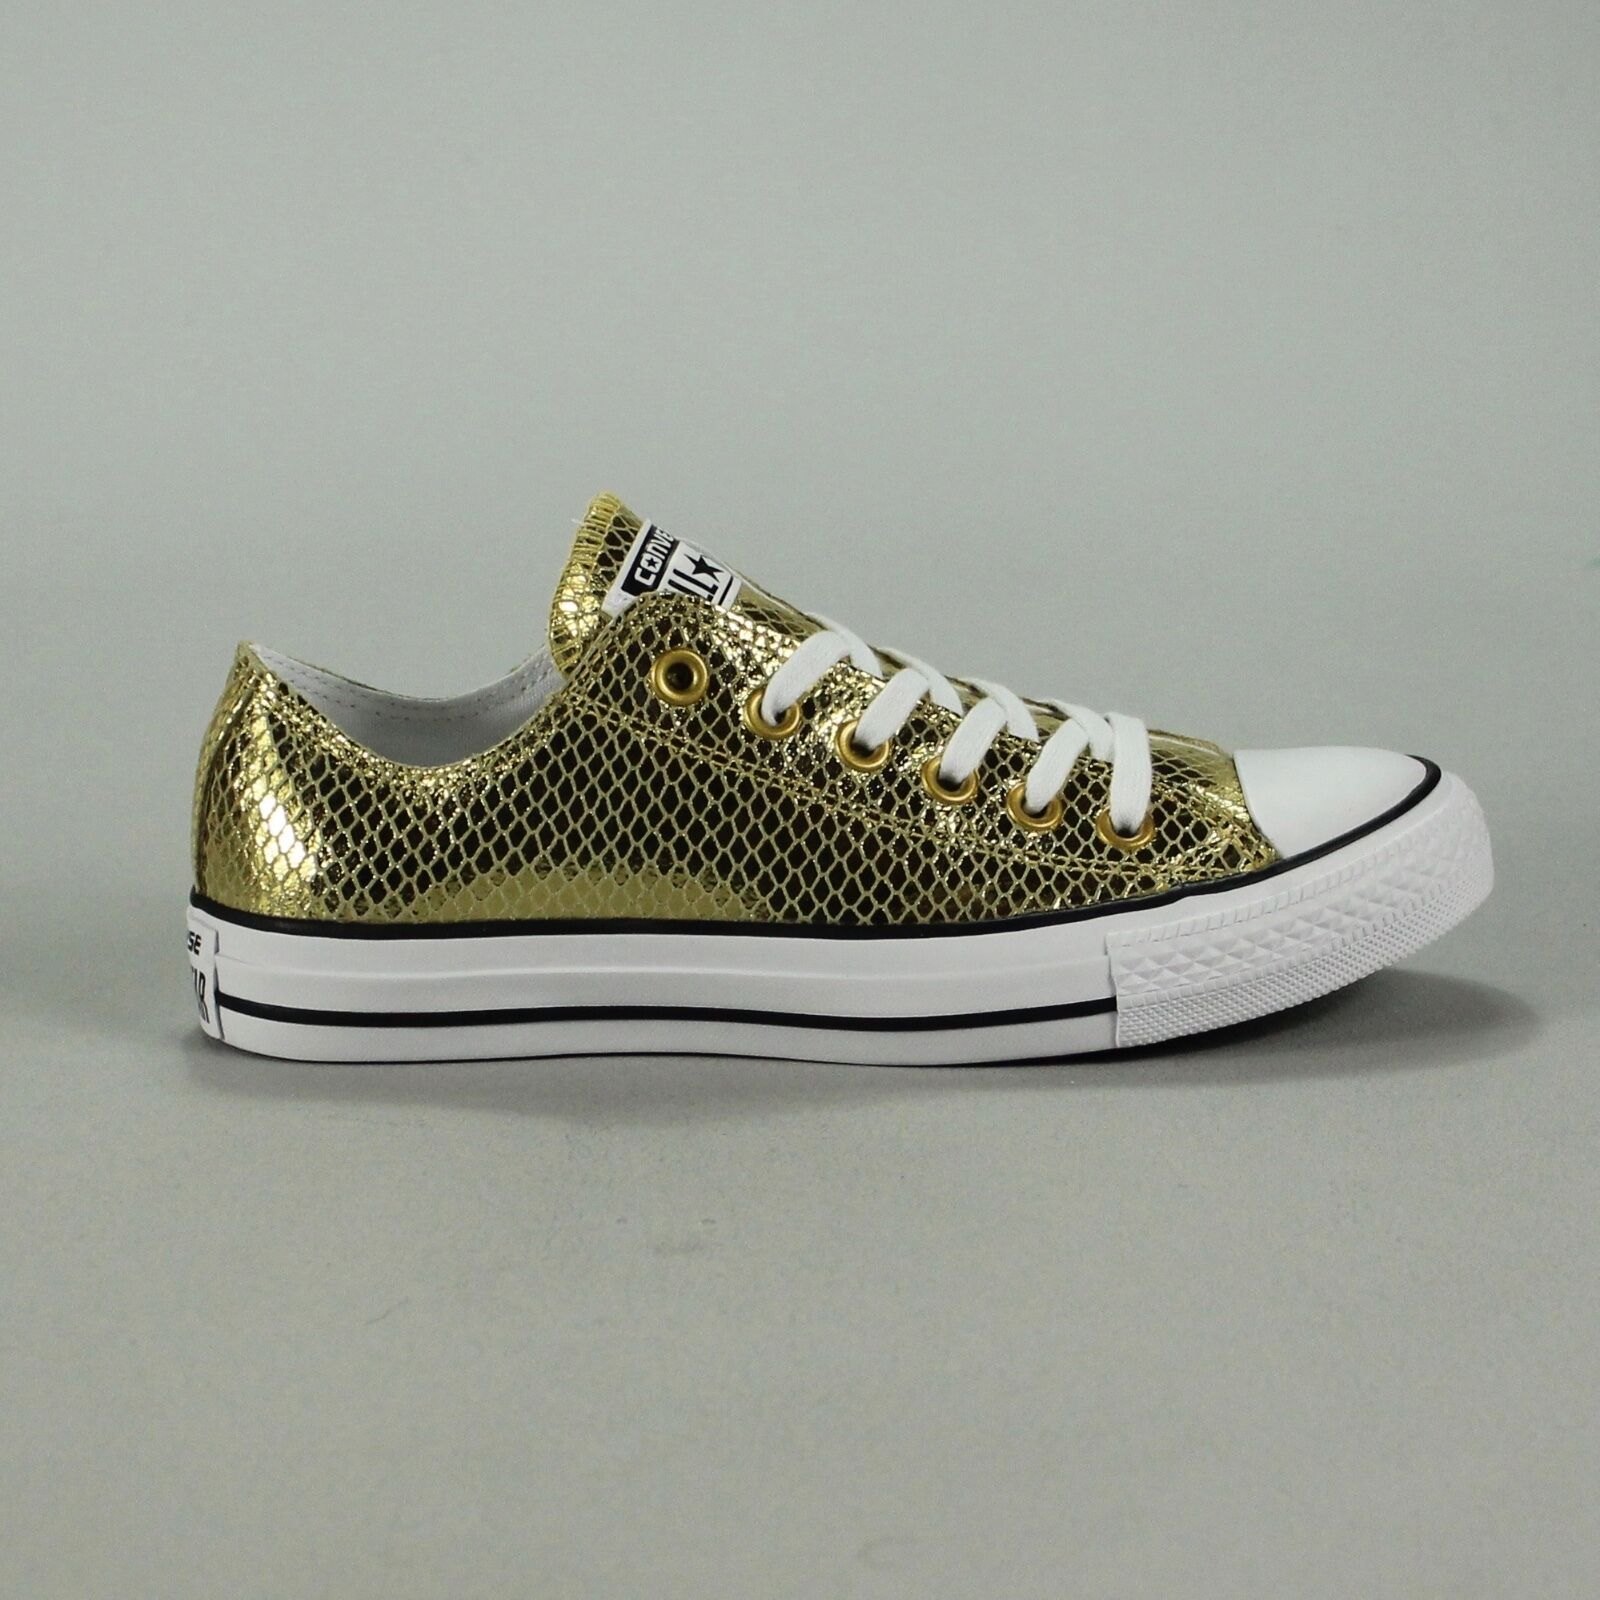 5afc1ebae25458 Details about Converse CT AS OX Leather Trainers Gold Black White New in  box UK size 4